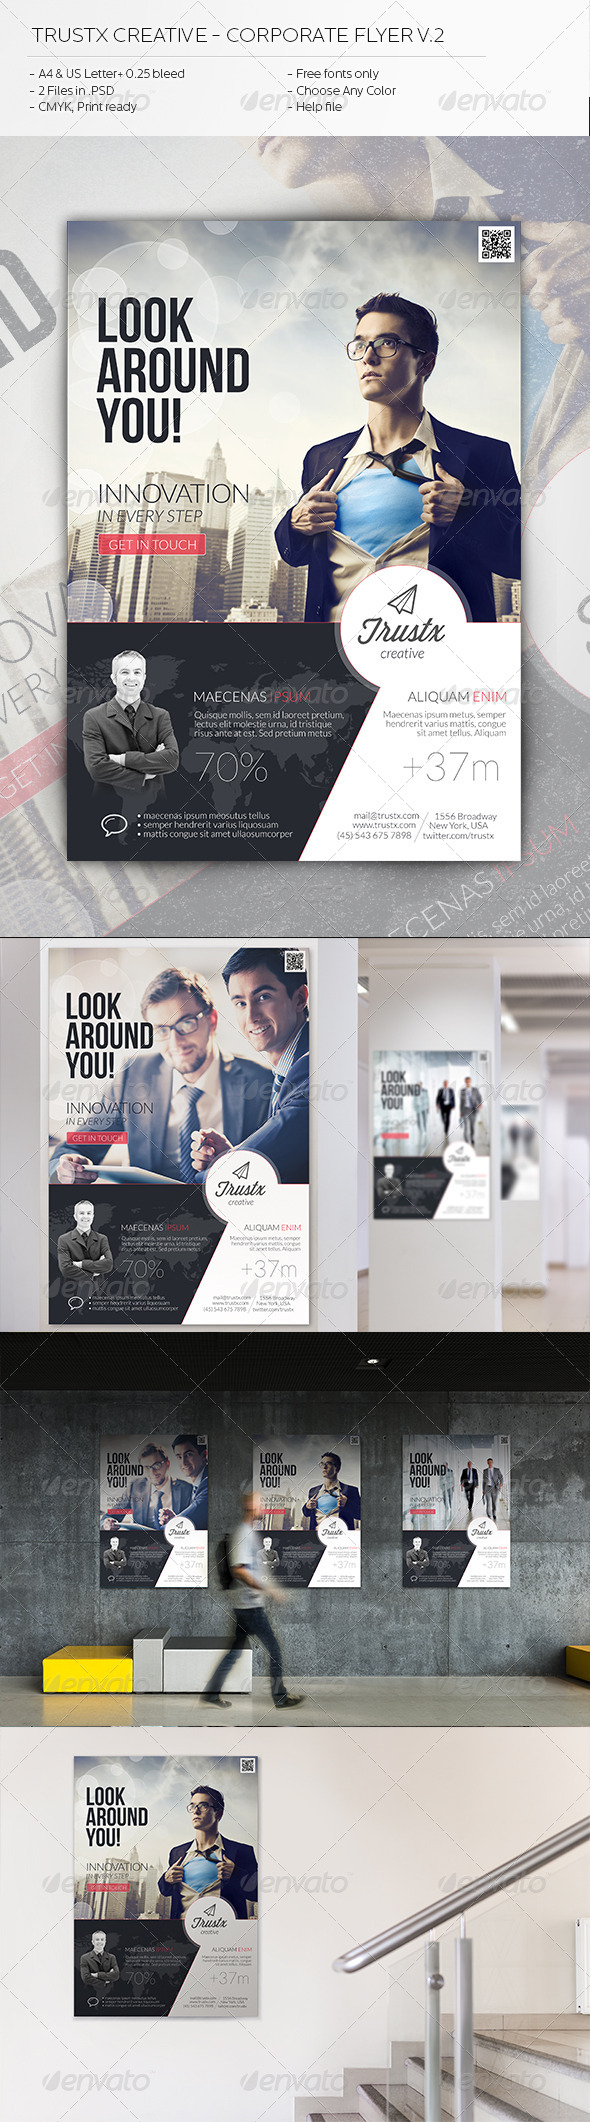 GraphicRiver Trustx Creative Corporate Flyer V2 5908748